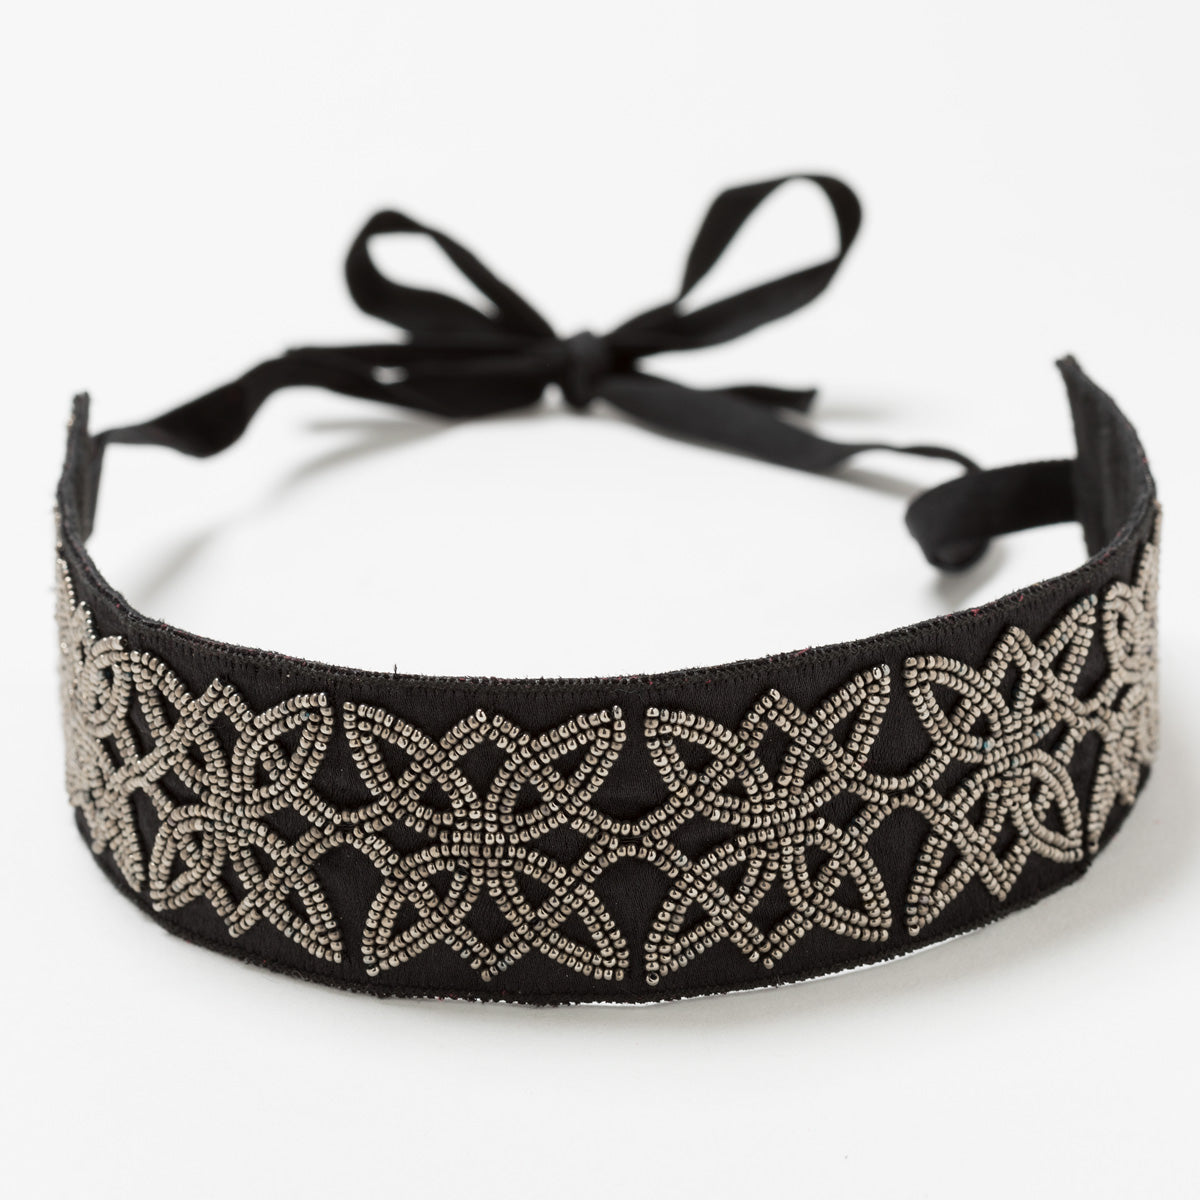 Lori Weitzner Ostara embroidered headband in charcoal